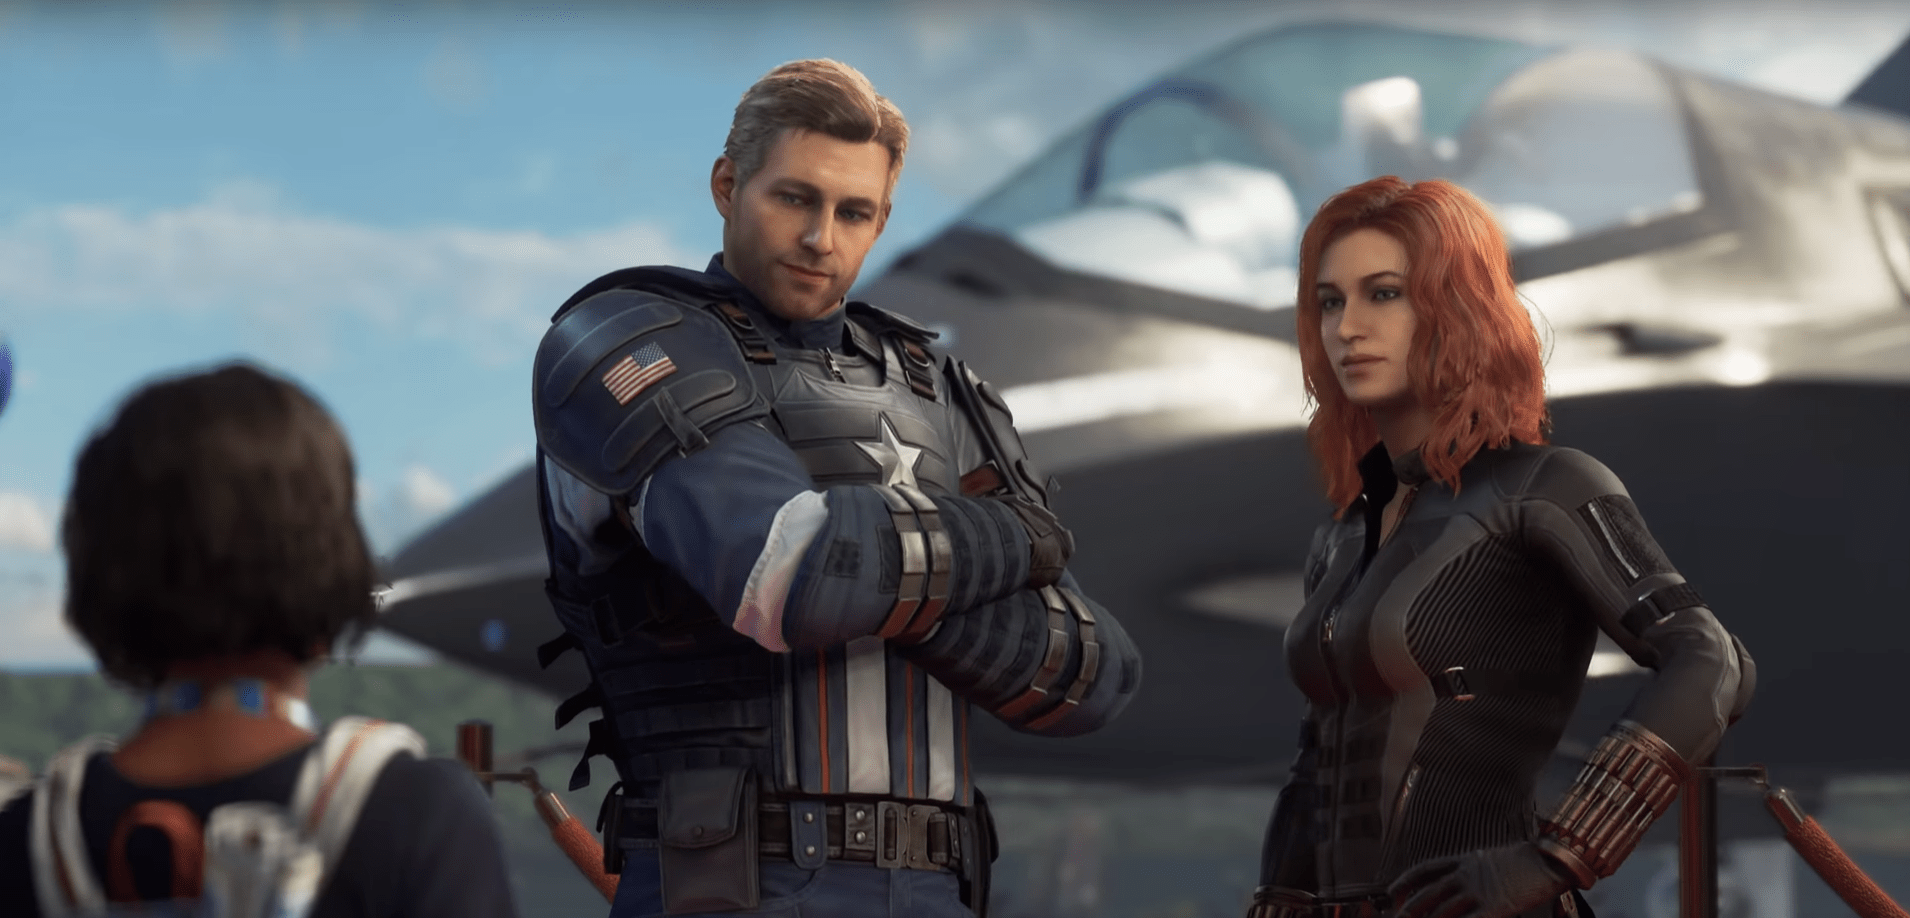 Marvel's Avengers Isn't Dead Yet; Crystal Dynamics Is Attempting To Bring More Content